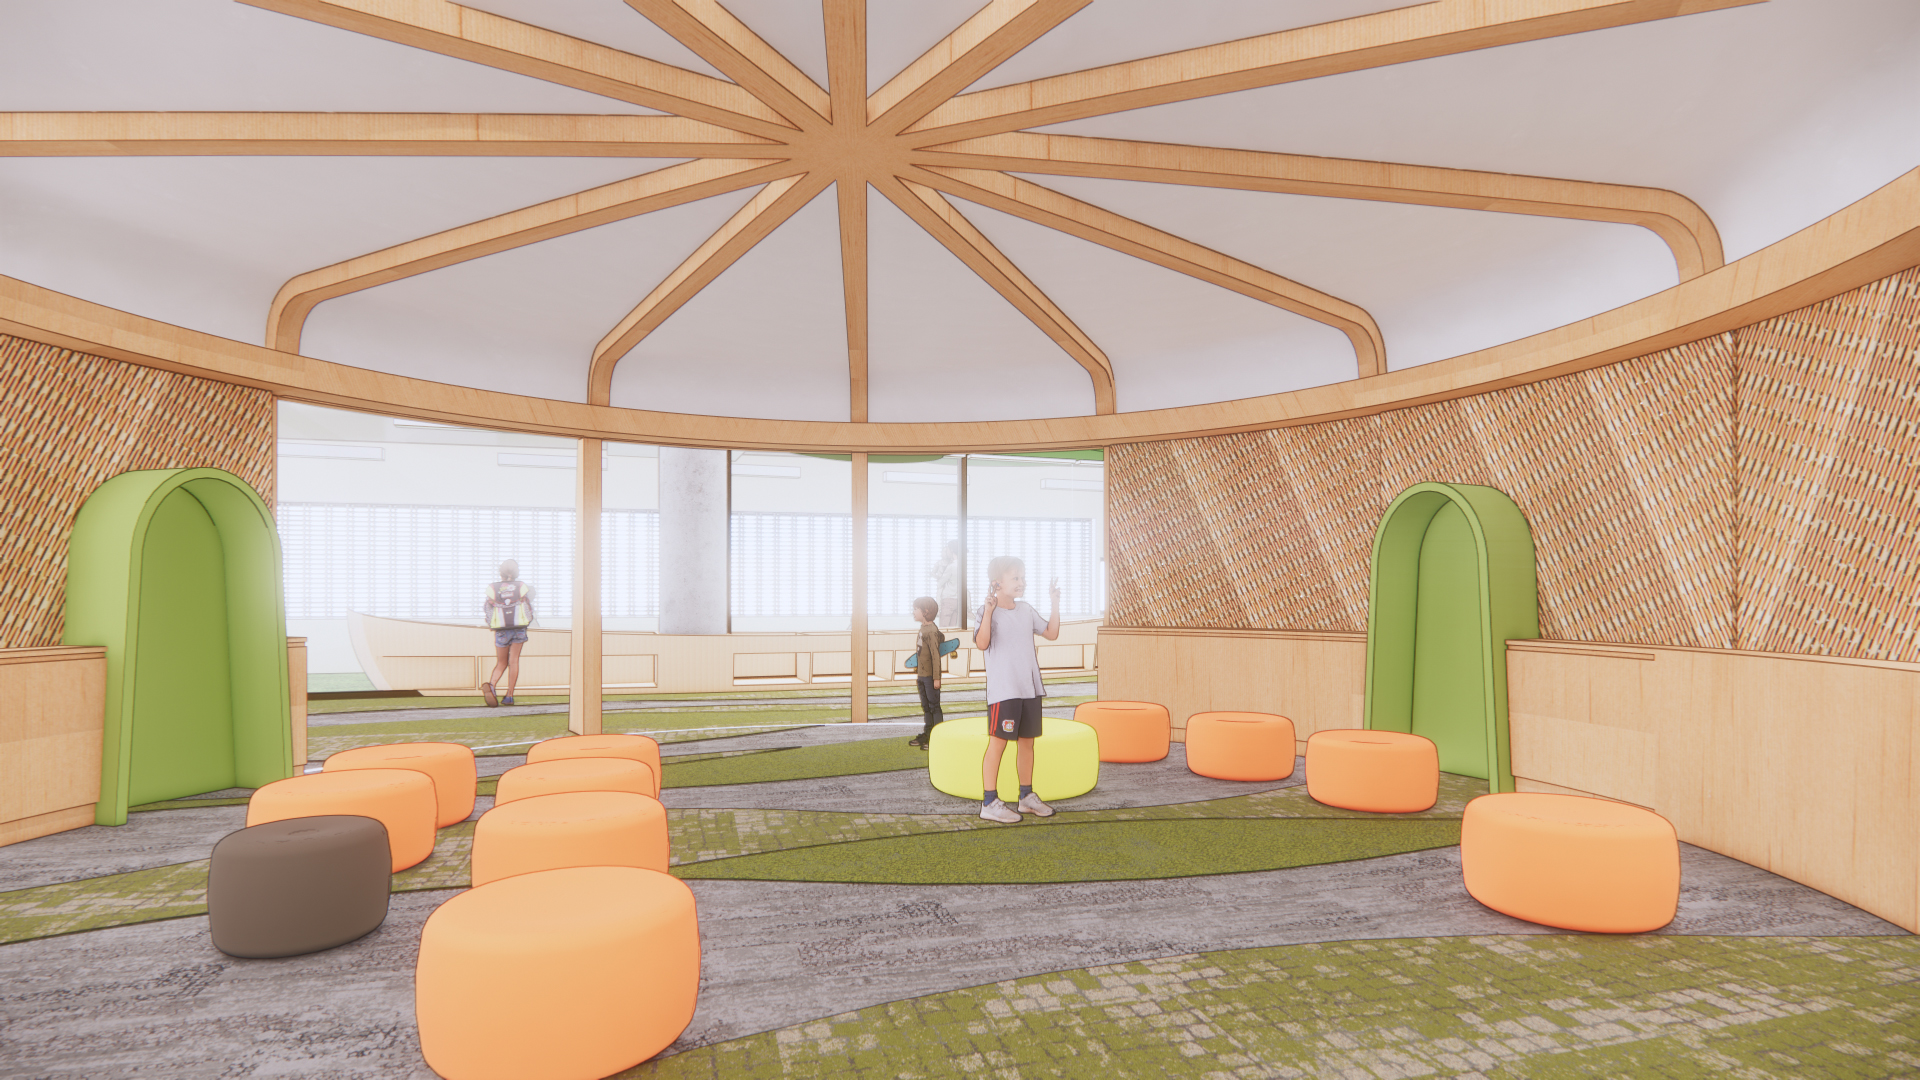 Rendering of the exterior of the Children's Story Room